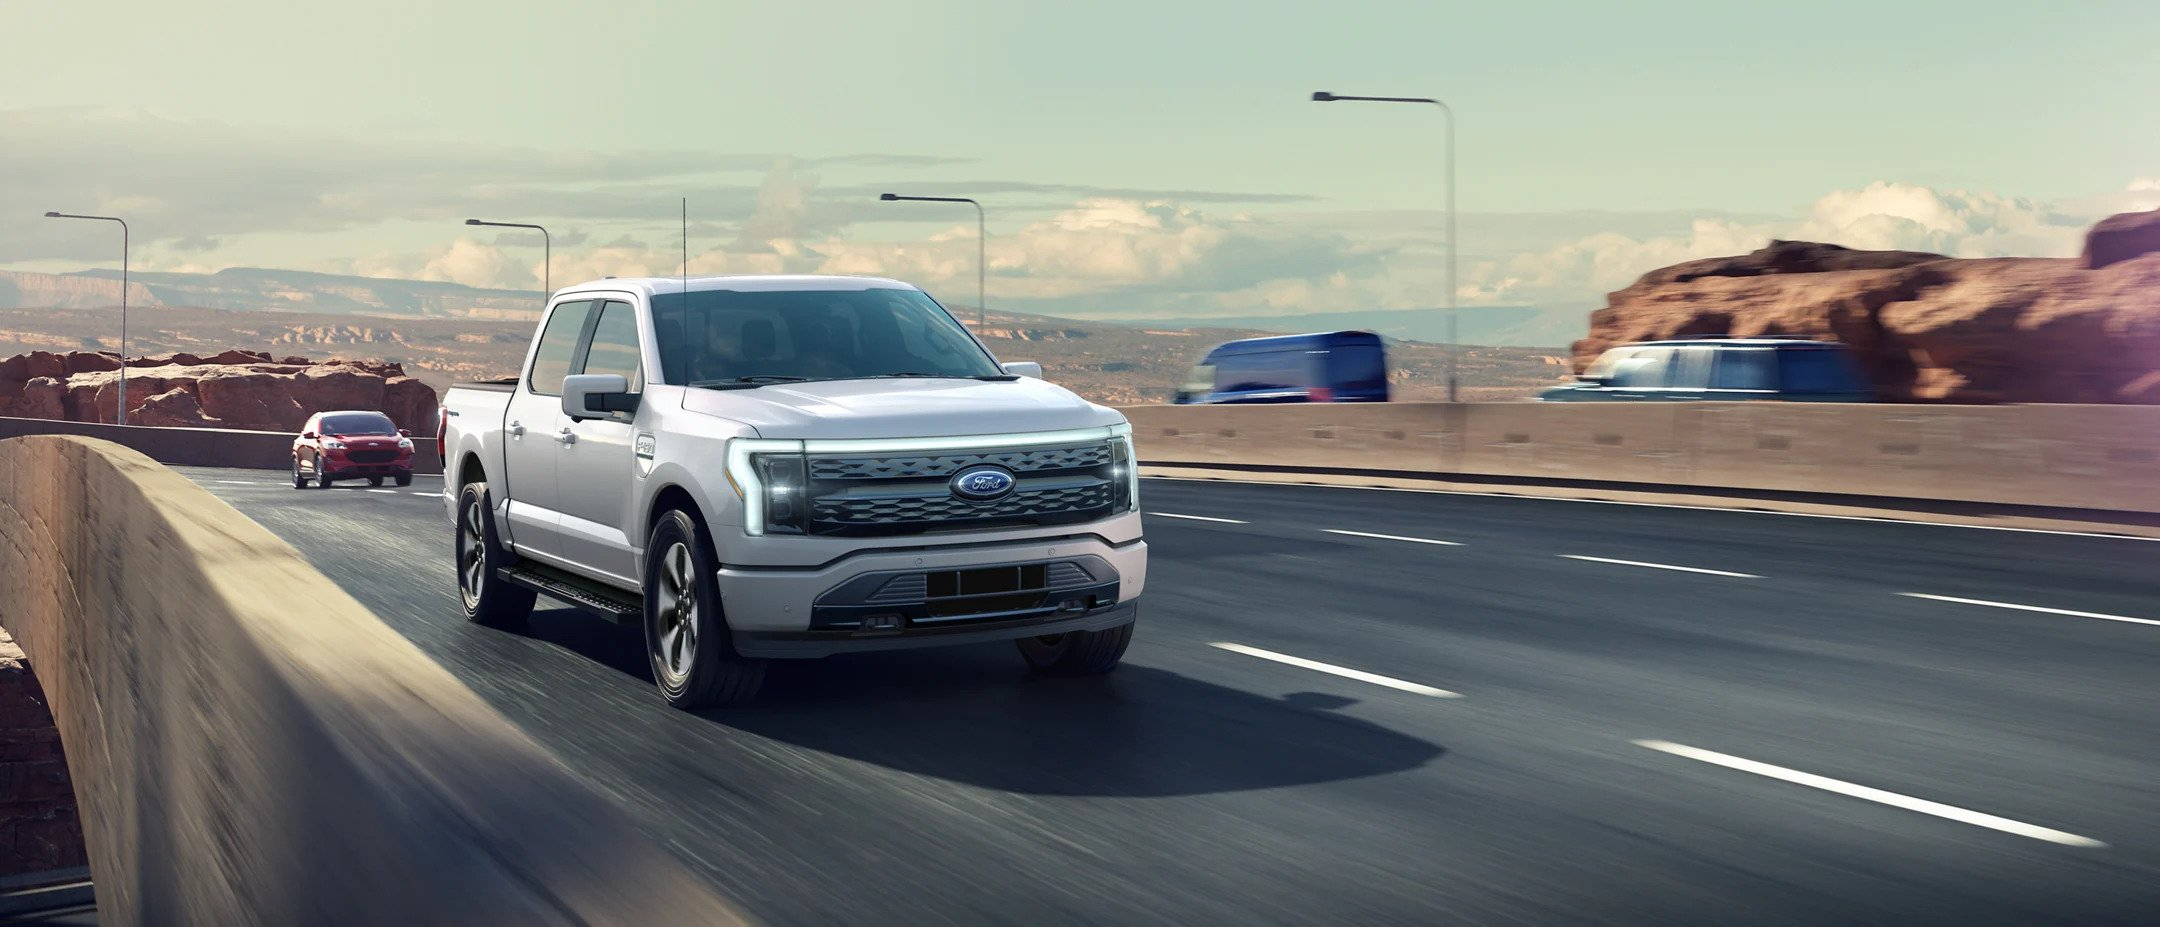 Ford F-150 Lightning at TransWest Truck Center